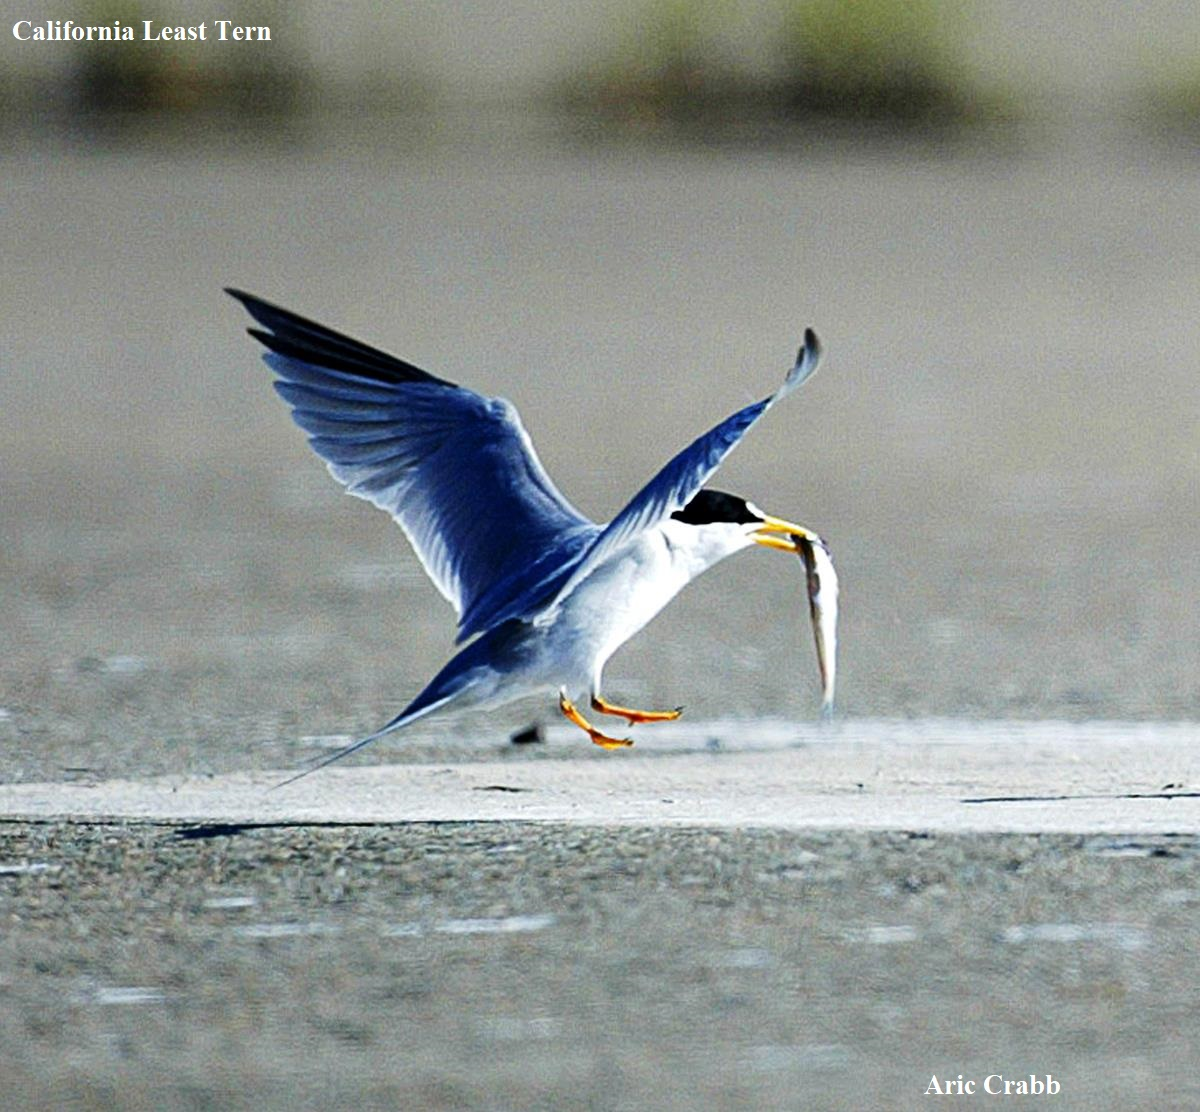 1 California Least Tern Aric Crabb